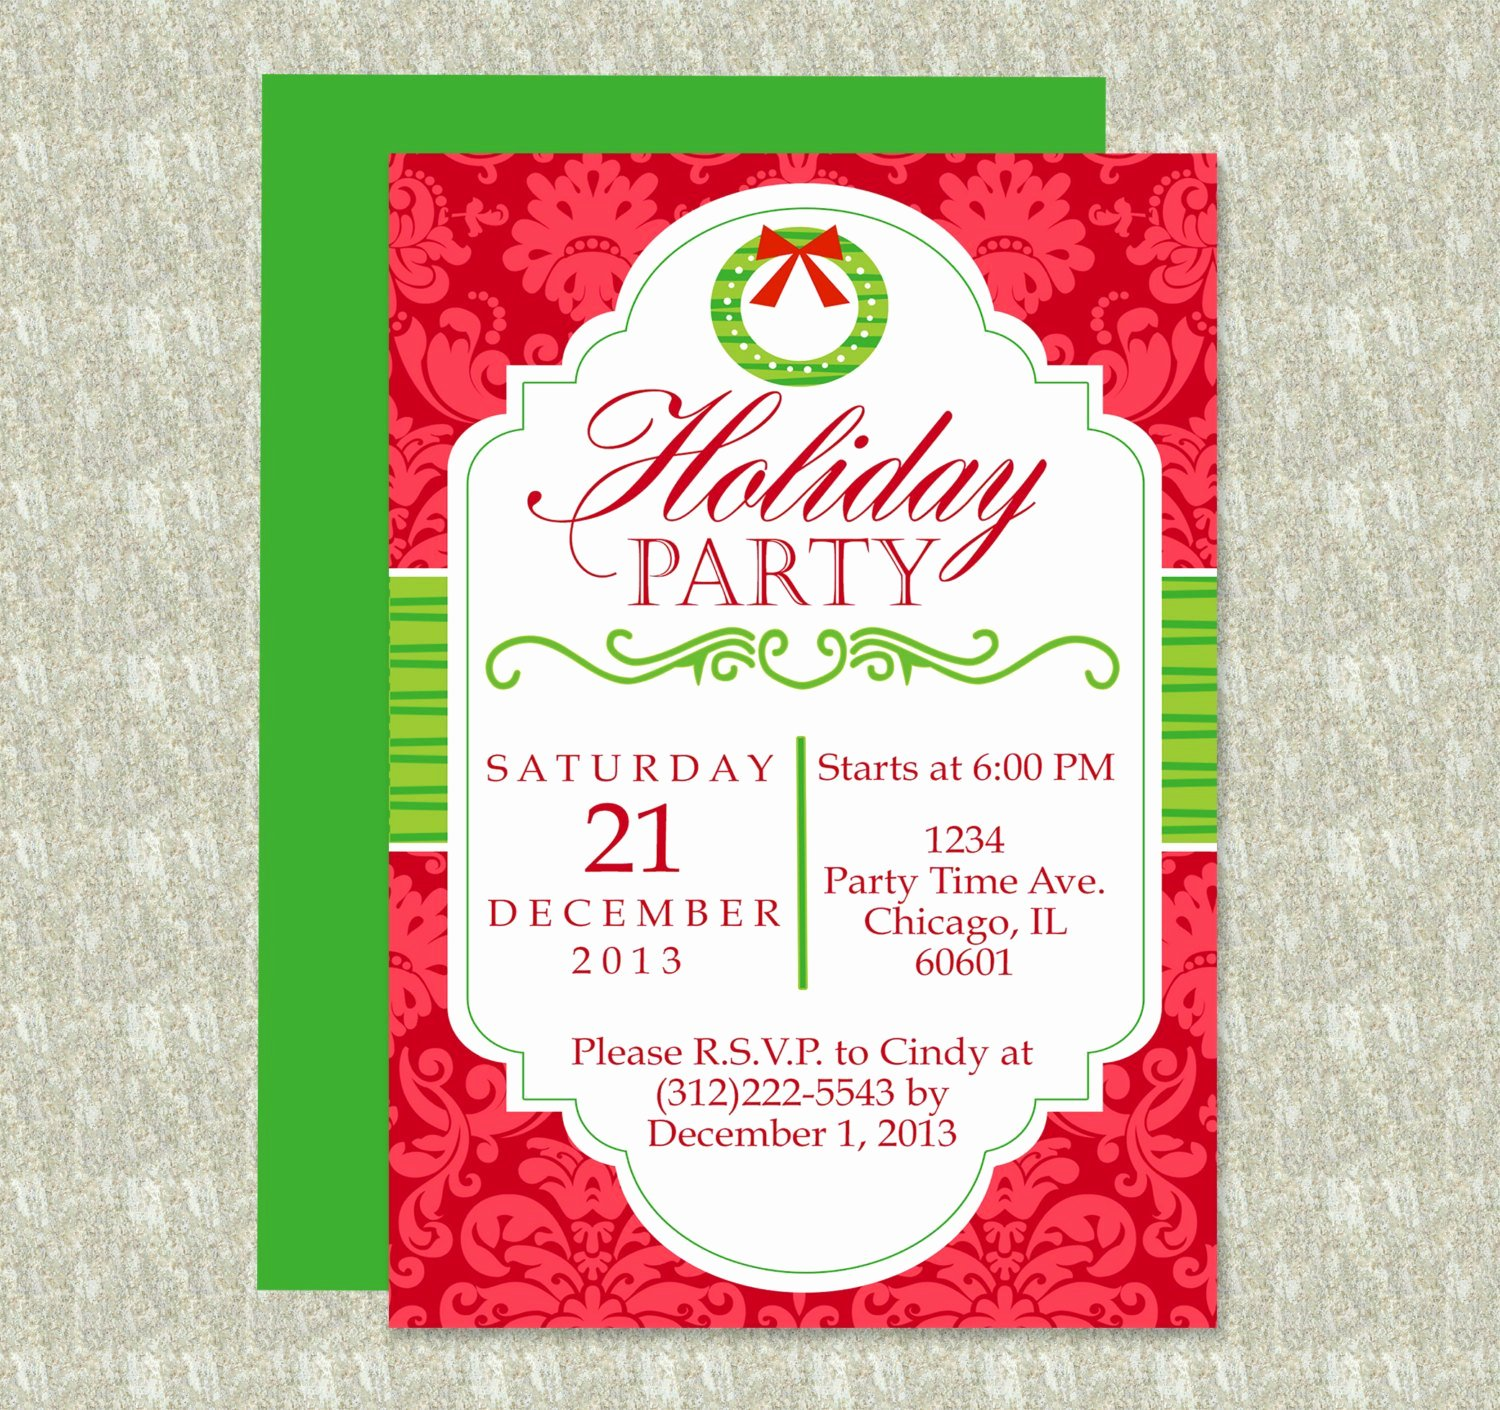 Holiday Party Invite Template Inspirational Holiday Party Invitation Editable Template Microsoft Word